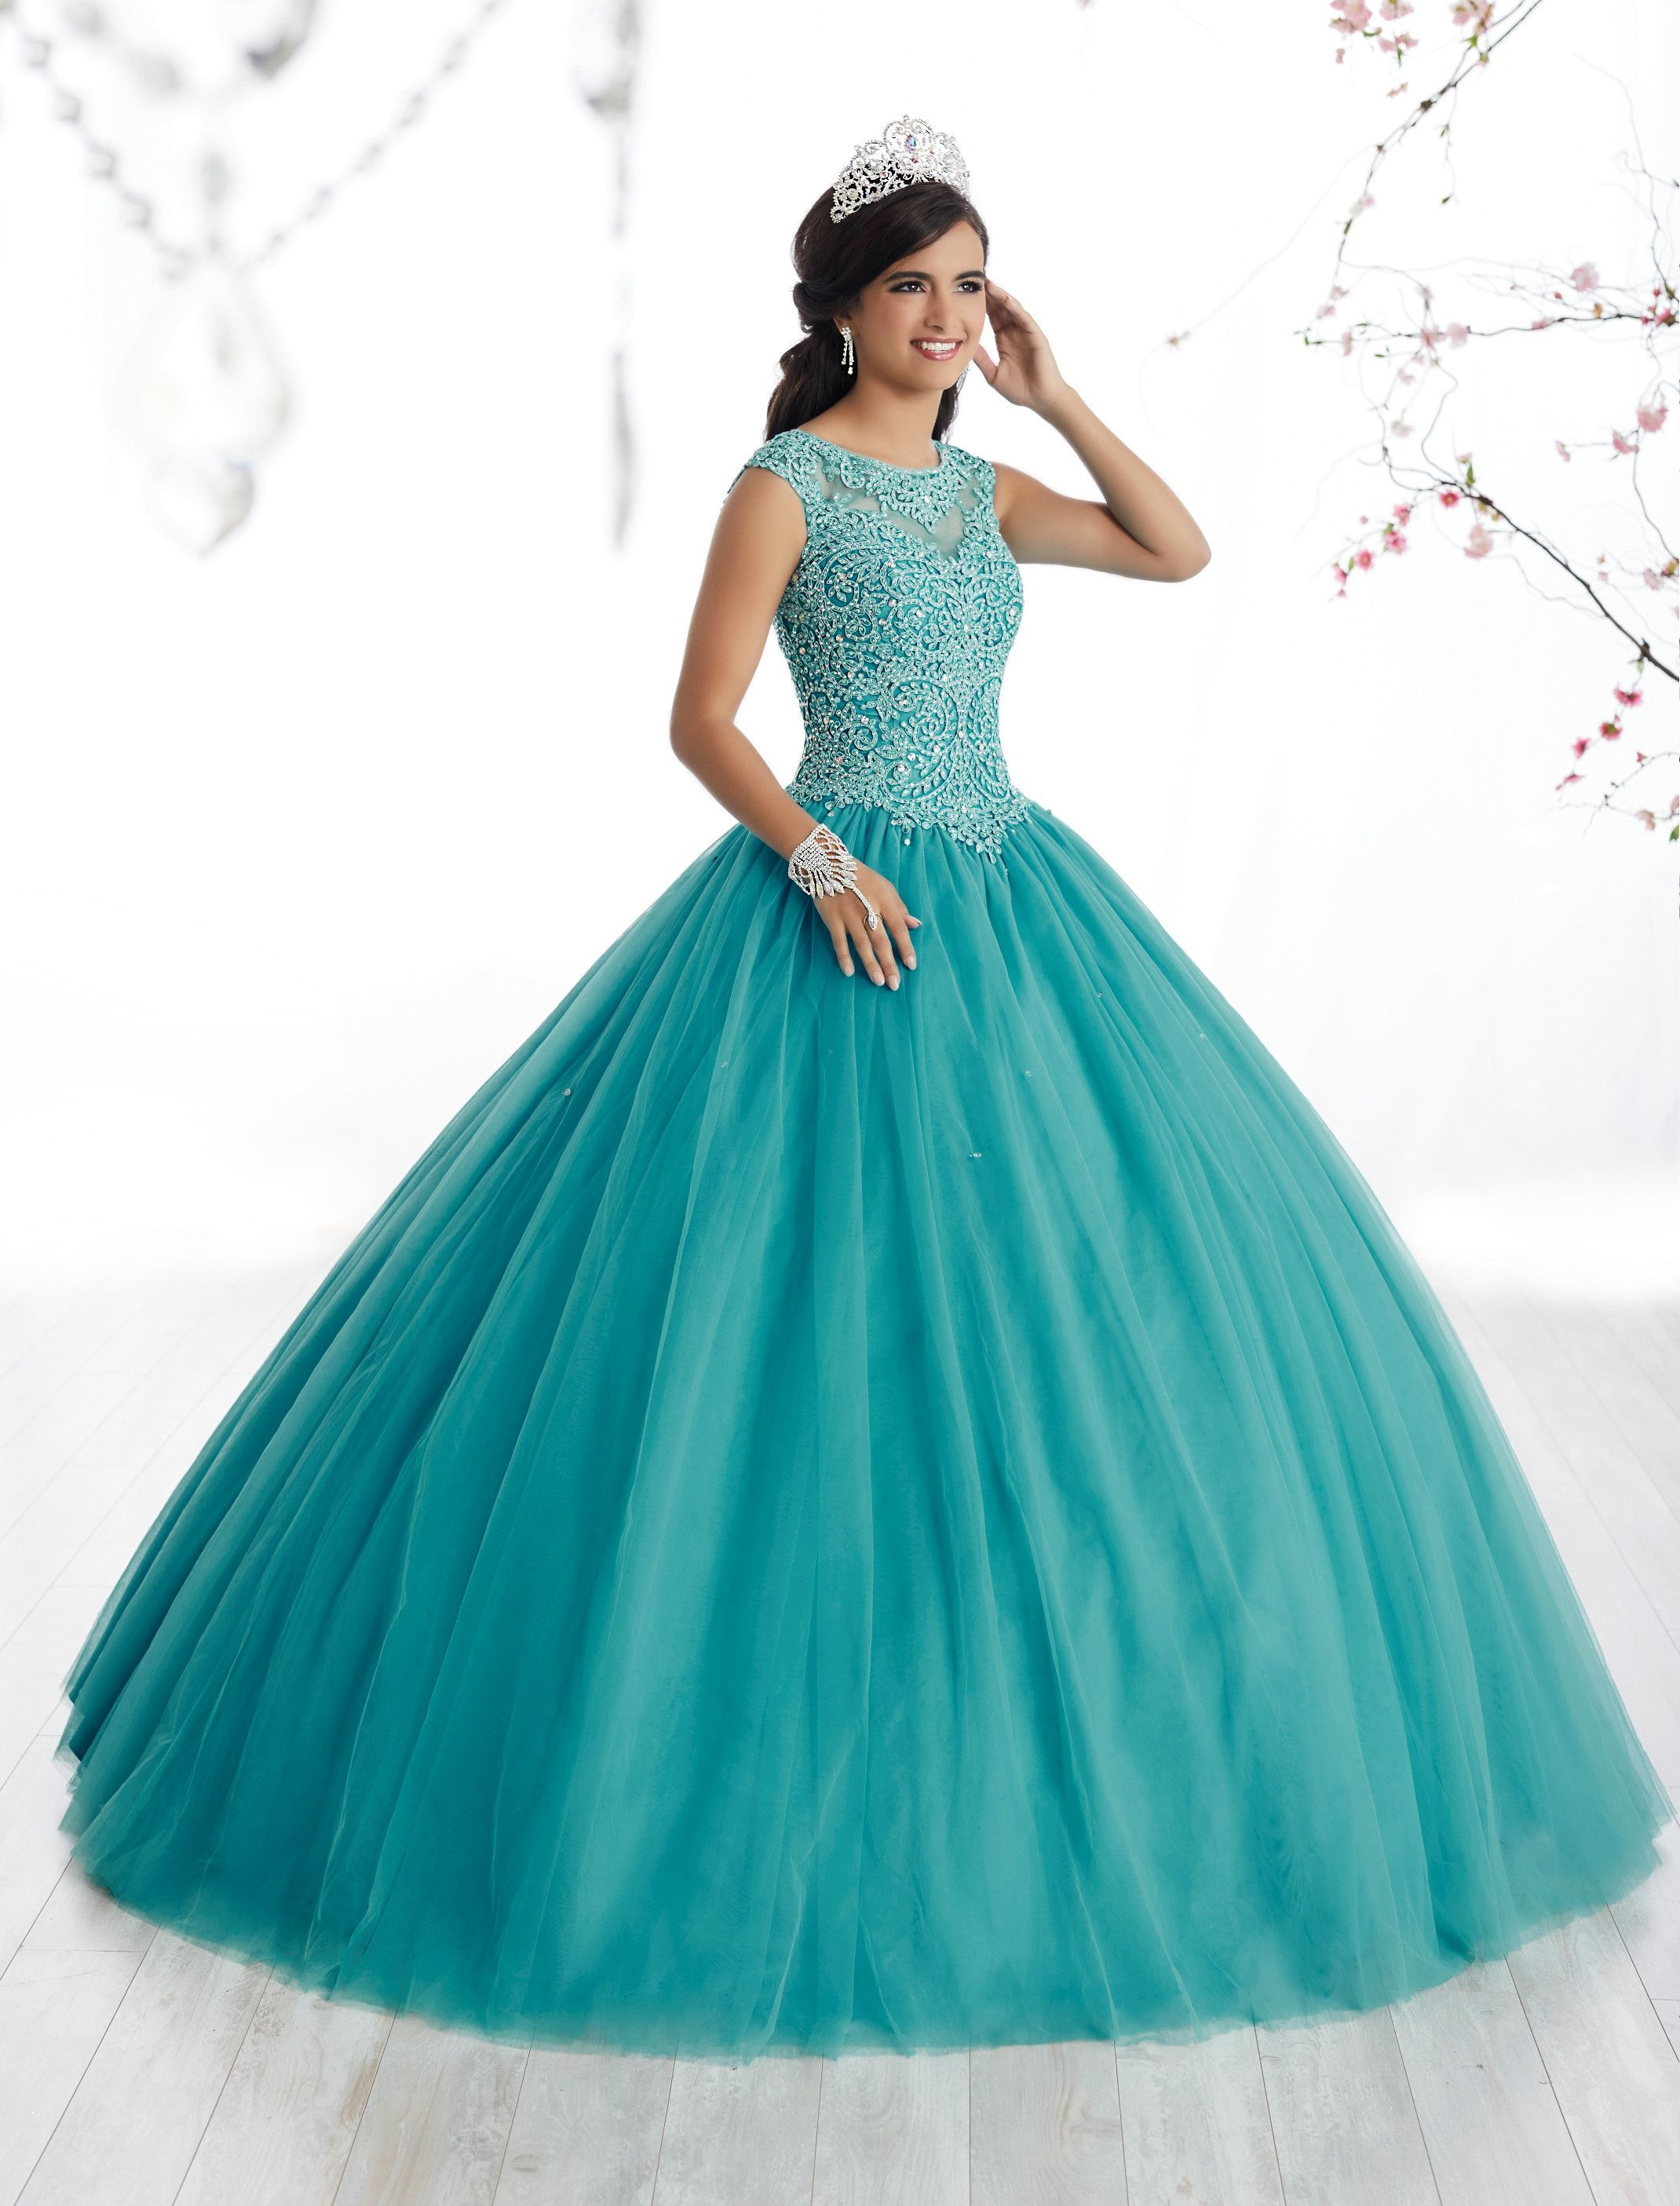 Illusion A-line Quinceanera Dress by Fiesta Gowns 56329 | Vestidos ...